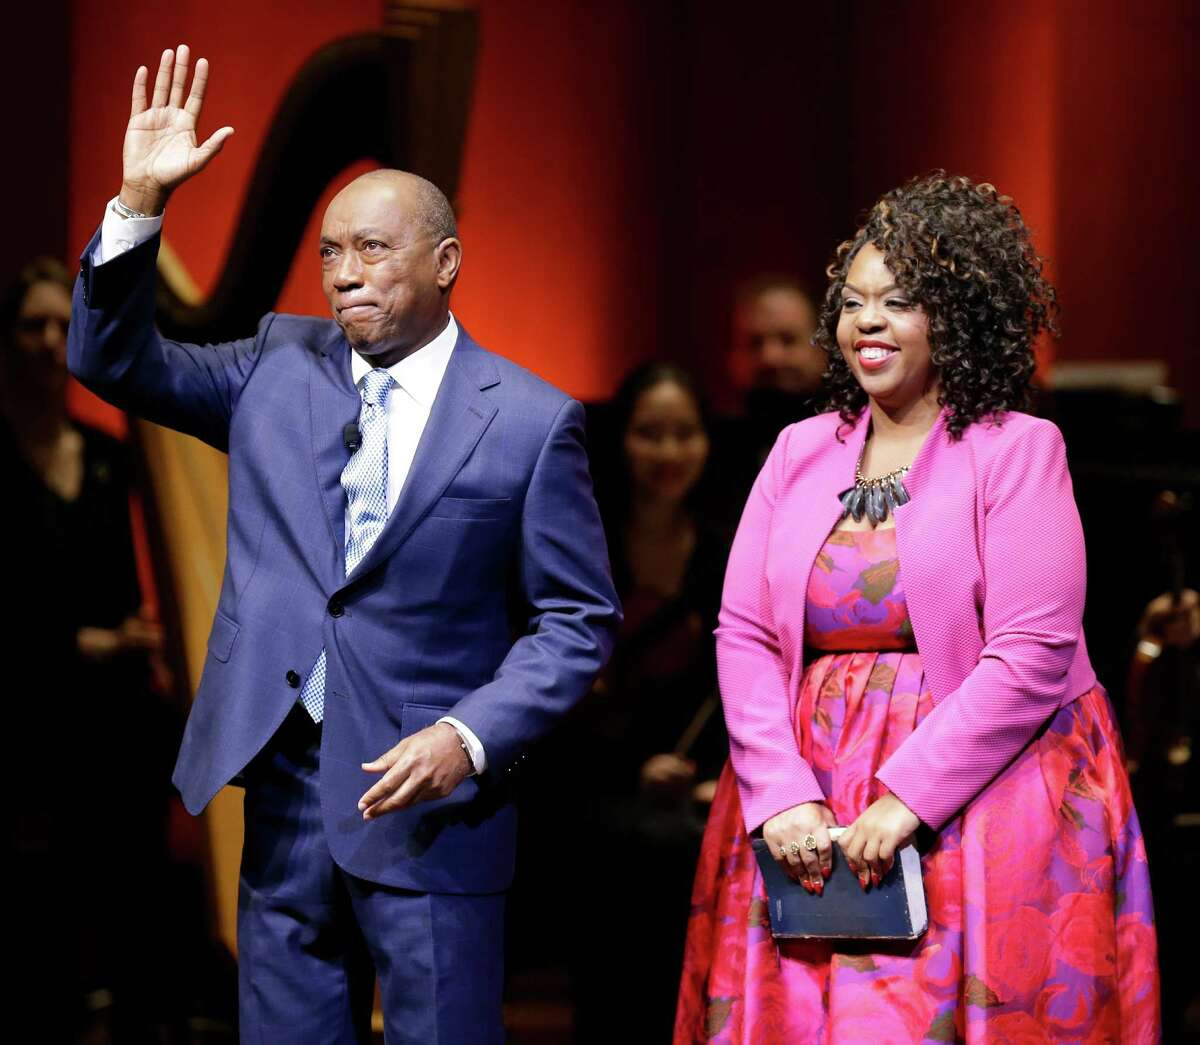 Mayor Sylvester Turner takes the oath of office Monday at Jones Hall with his daughter Ashley at his side.